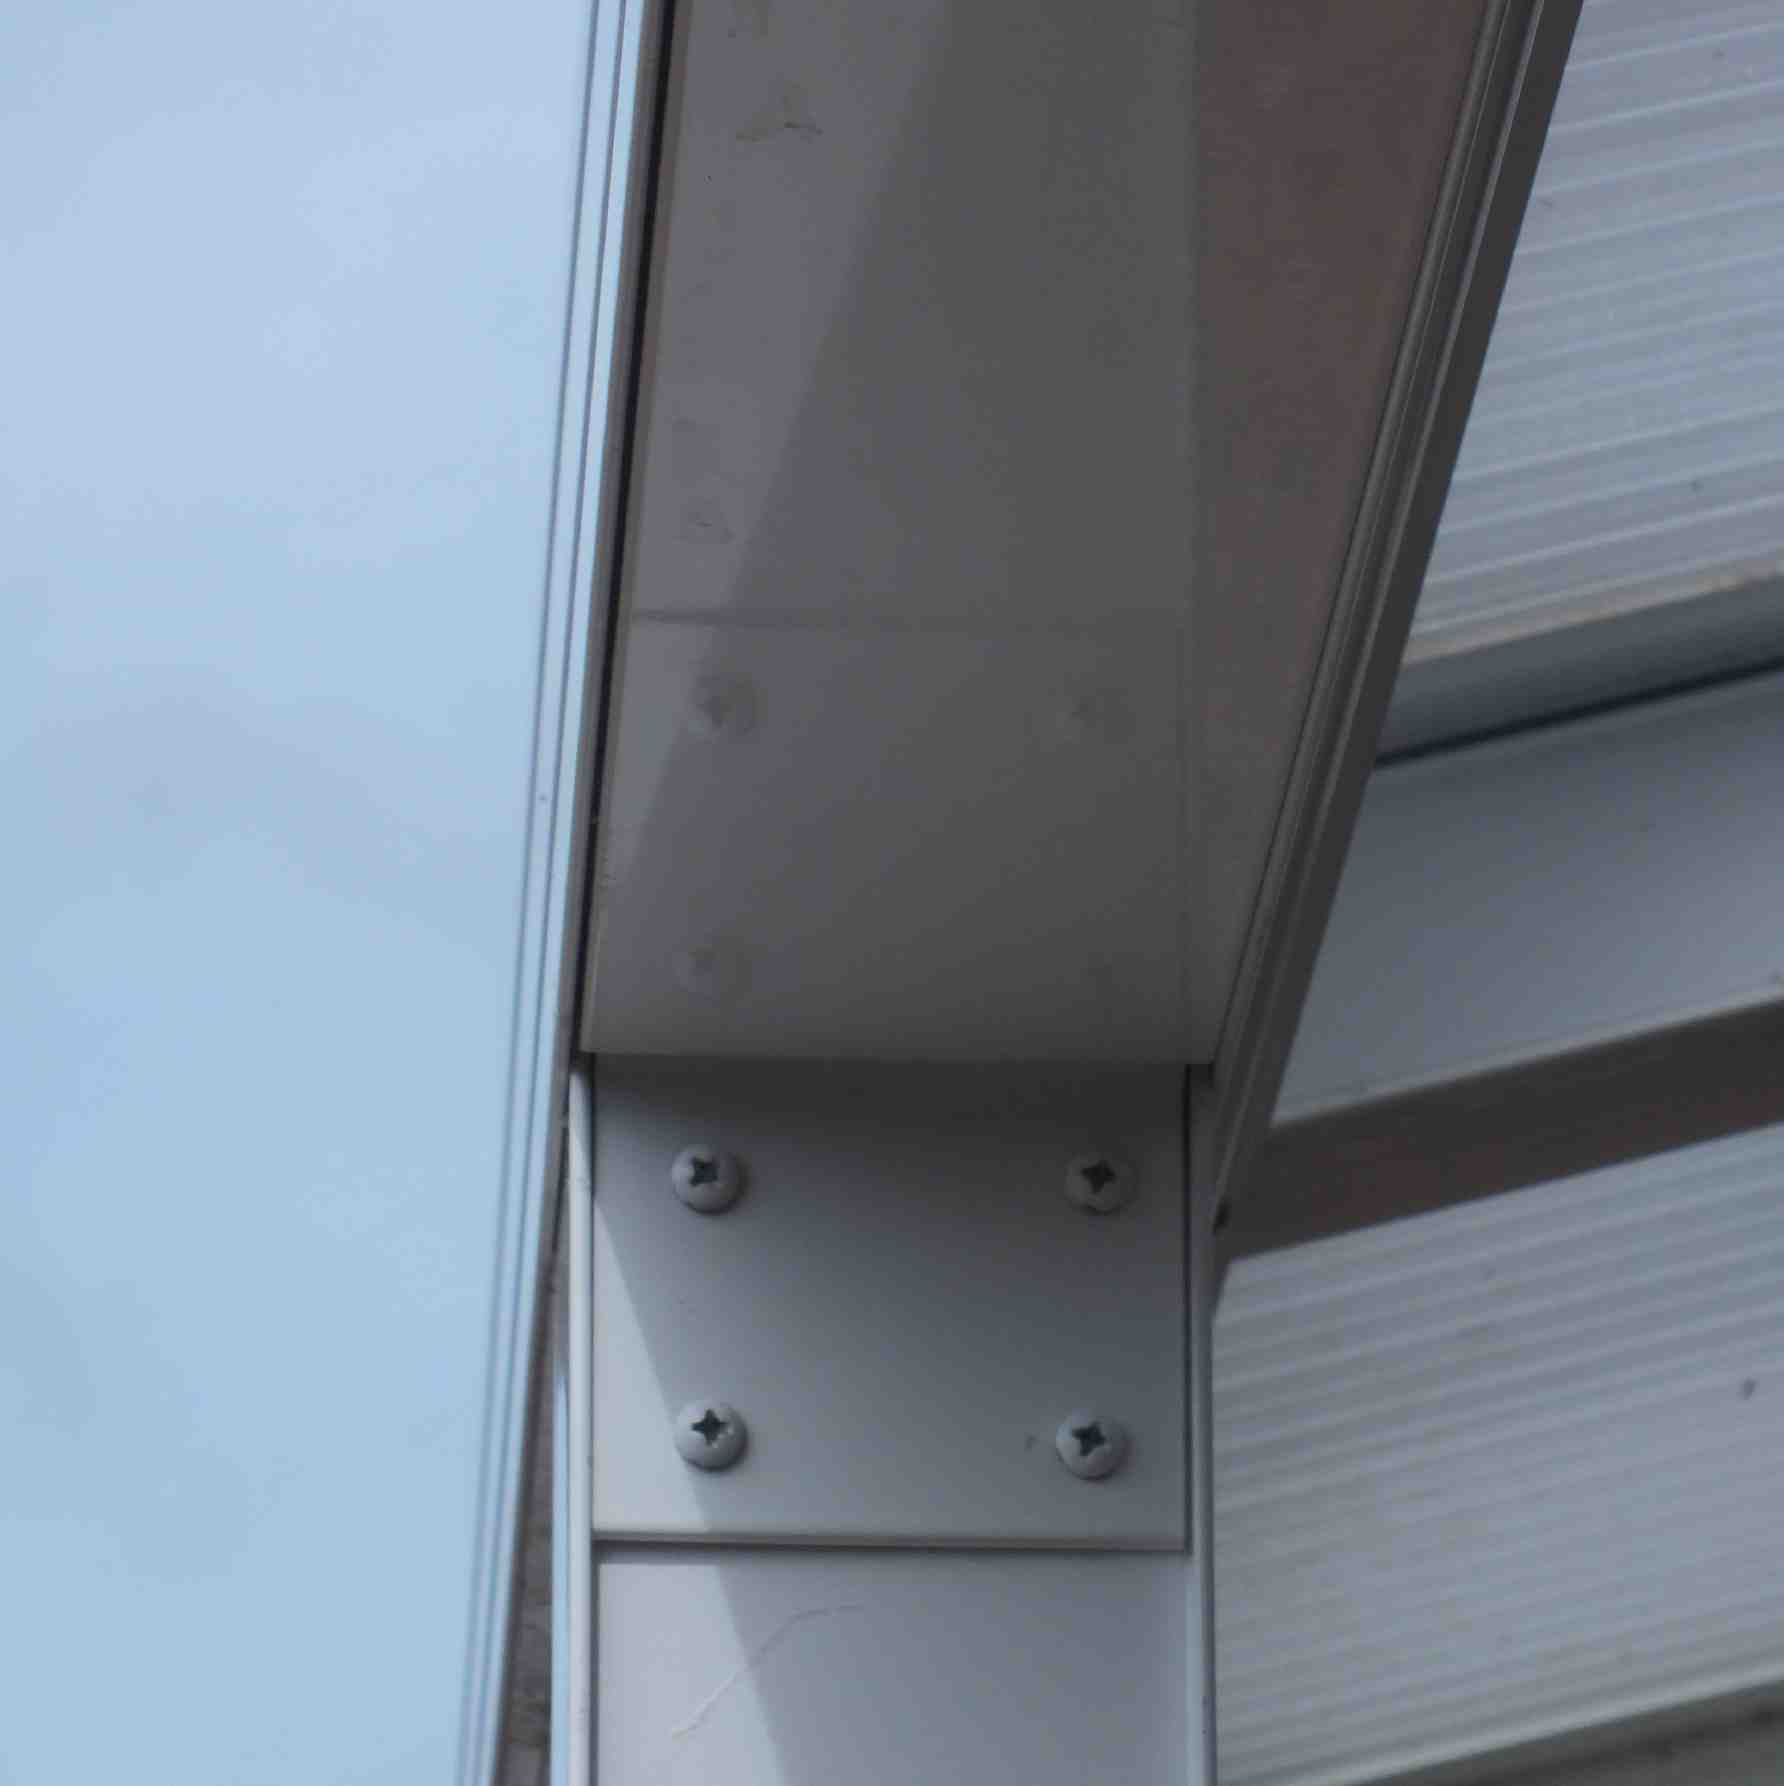 Affordable Omega Verandah with 16mm Polycarbonate Glazing - 8.4m (W) x 4.5m (P), (4) Supporting Posts